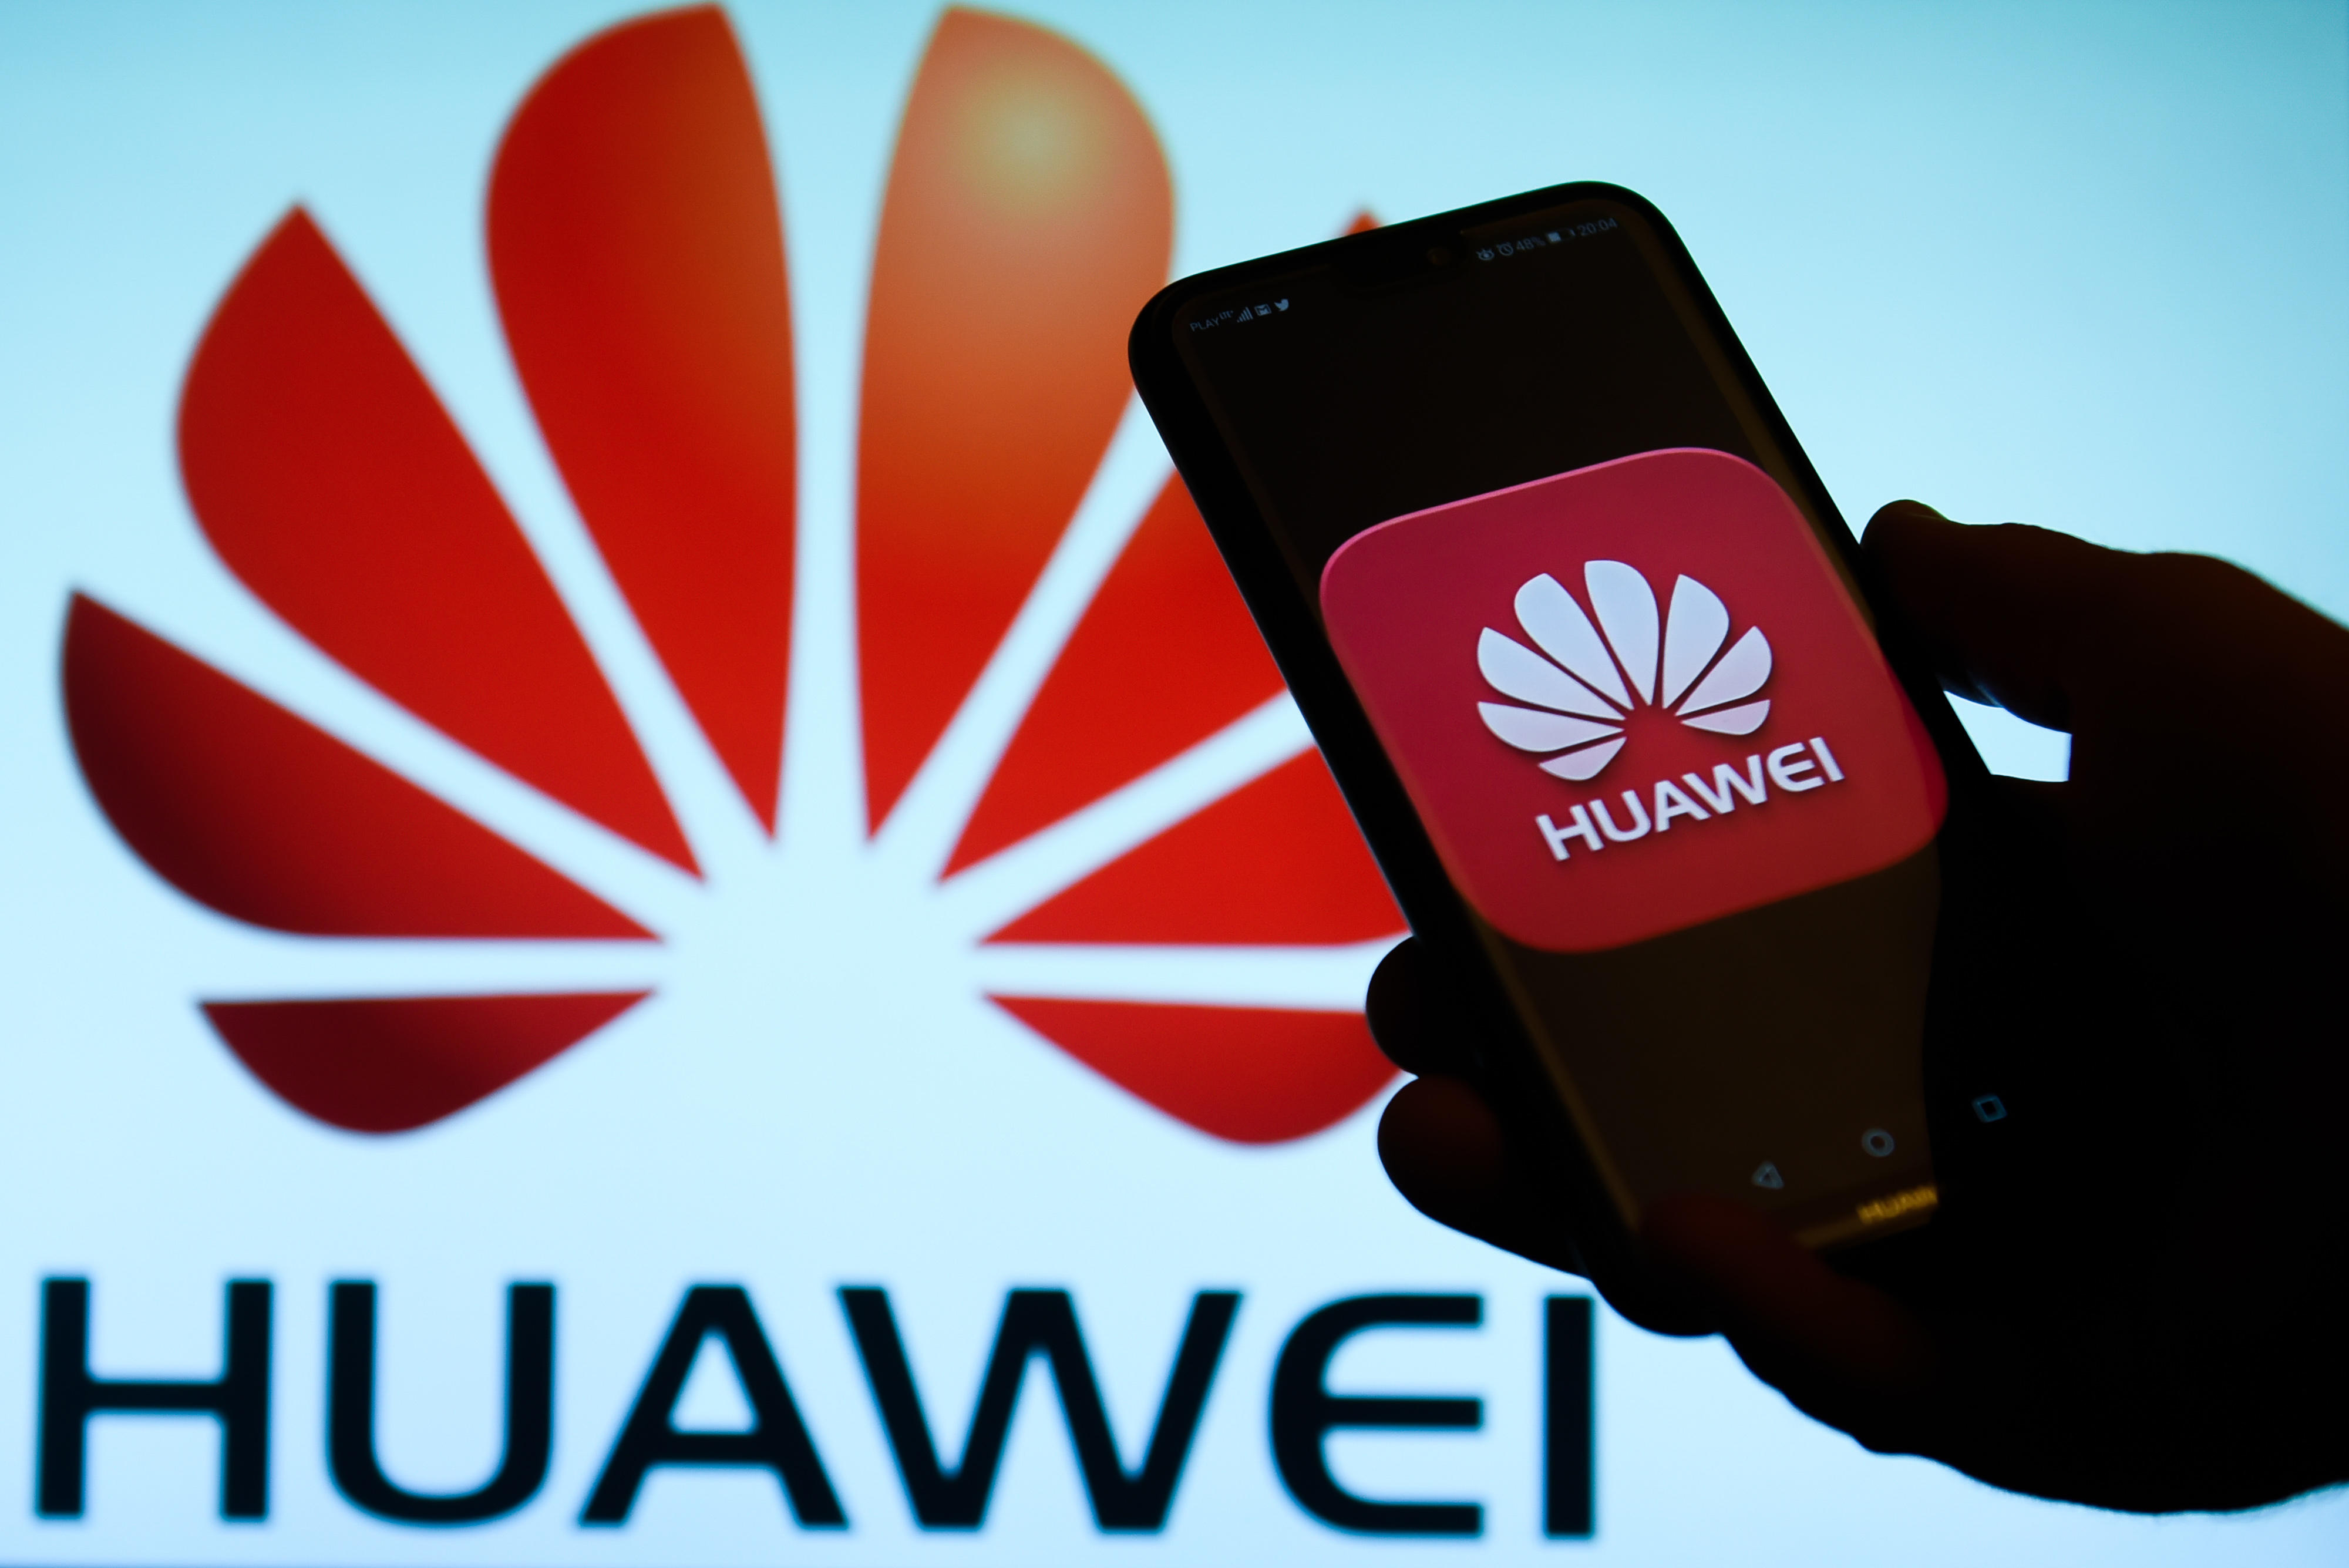 Huawei logo is seen on an android mobile phone